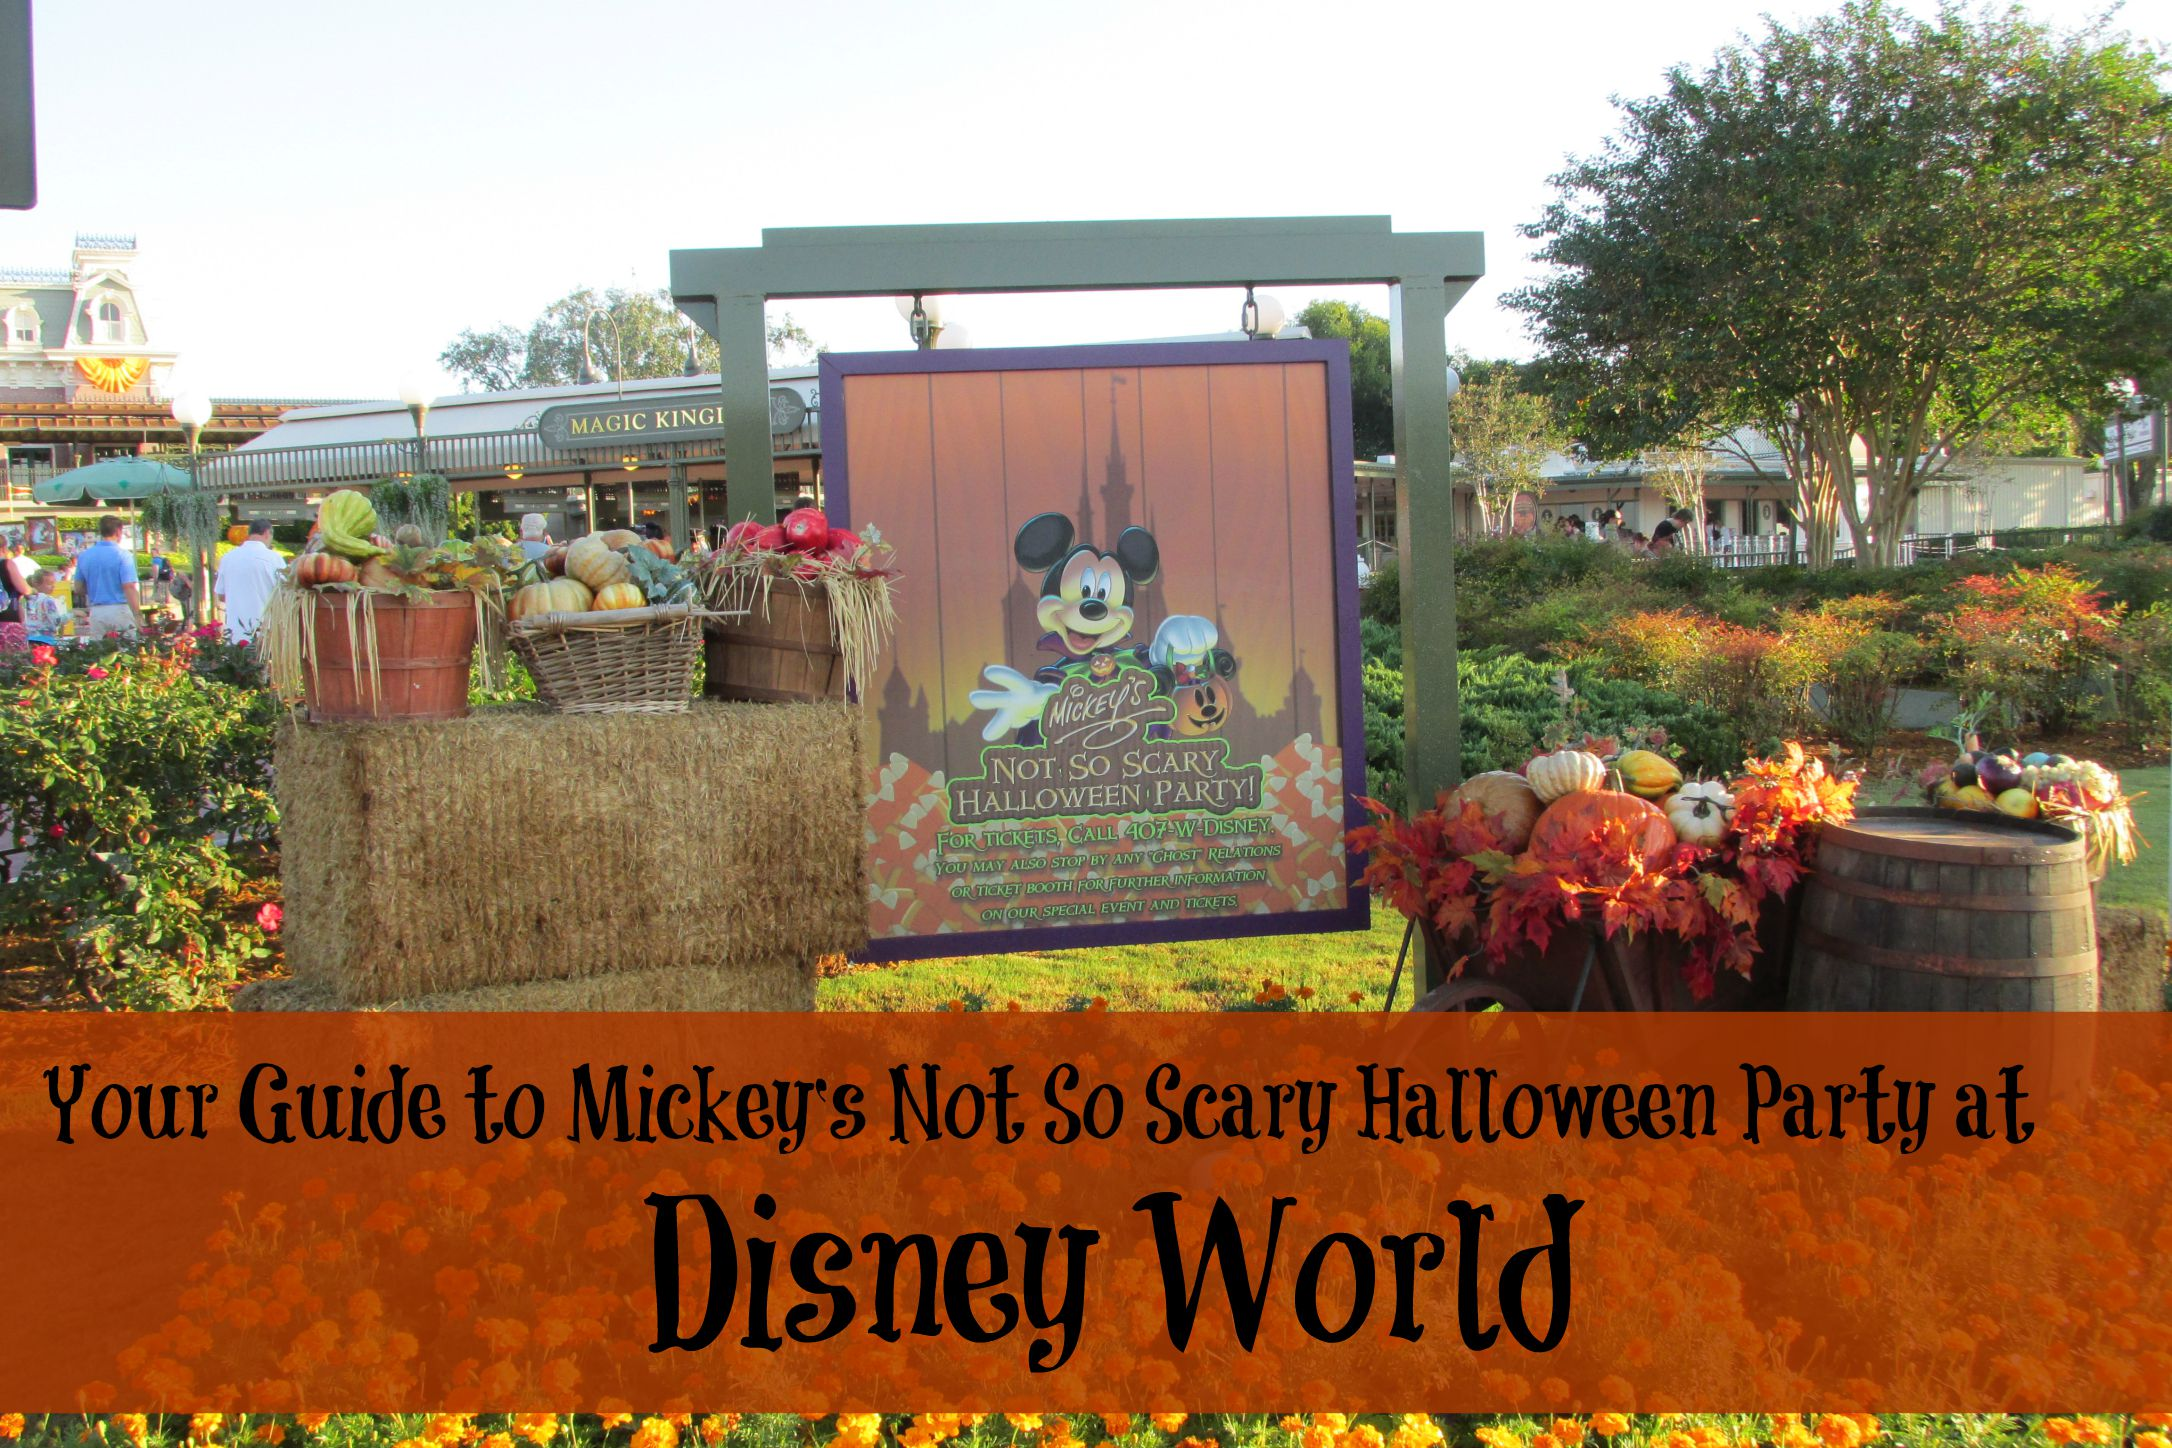 Your Guide to Mickey's Not So Scary Halloween Party at Disney World